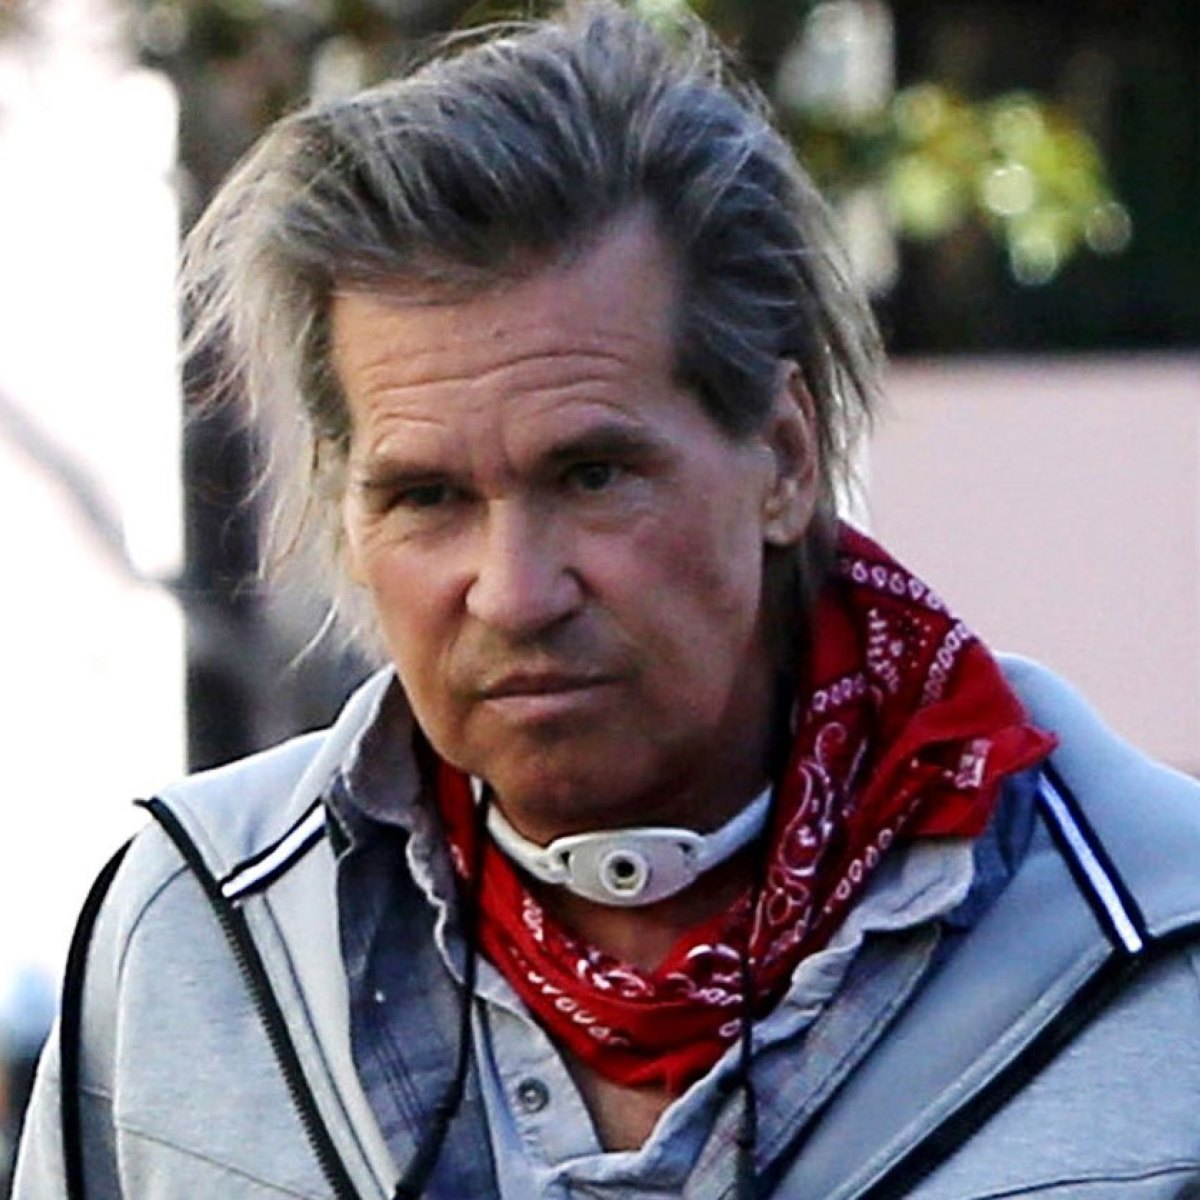 Val Kilmer wearing trachea breathing device and covers it up with red bandana